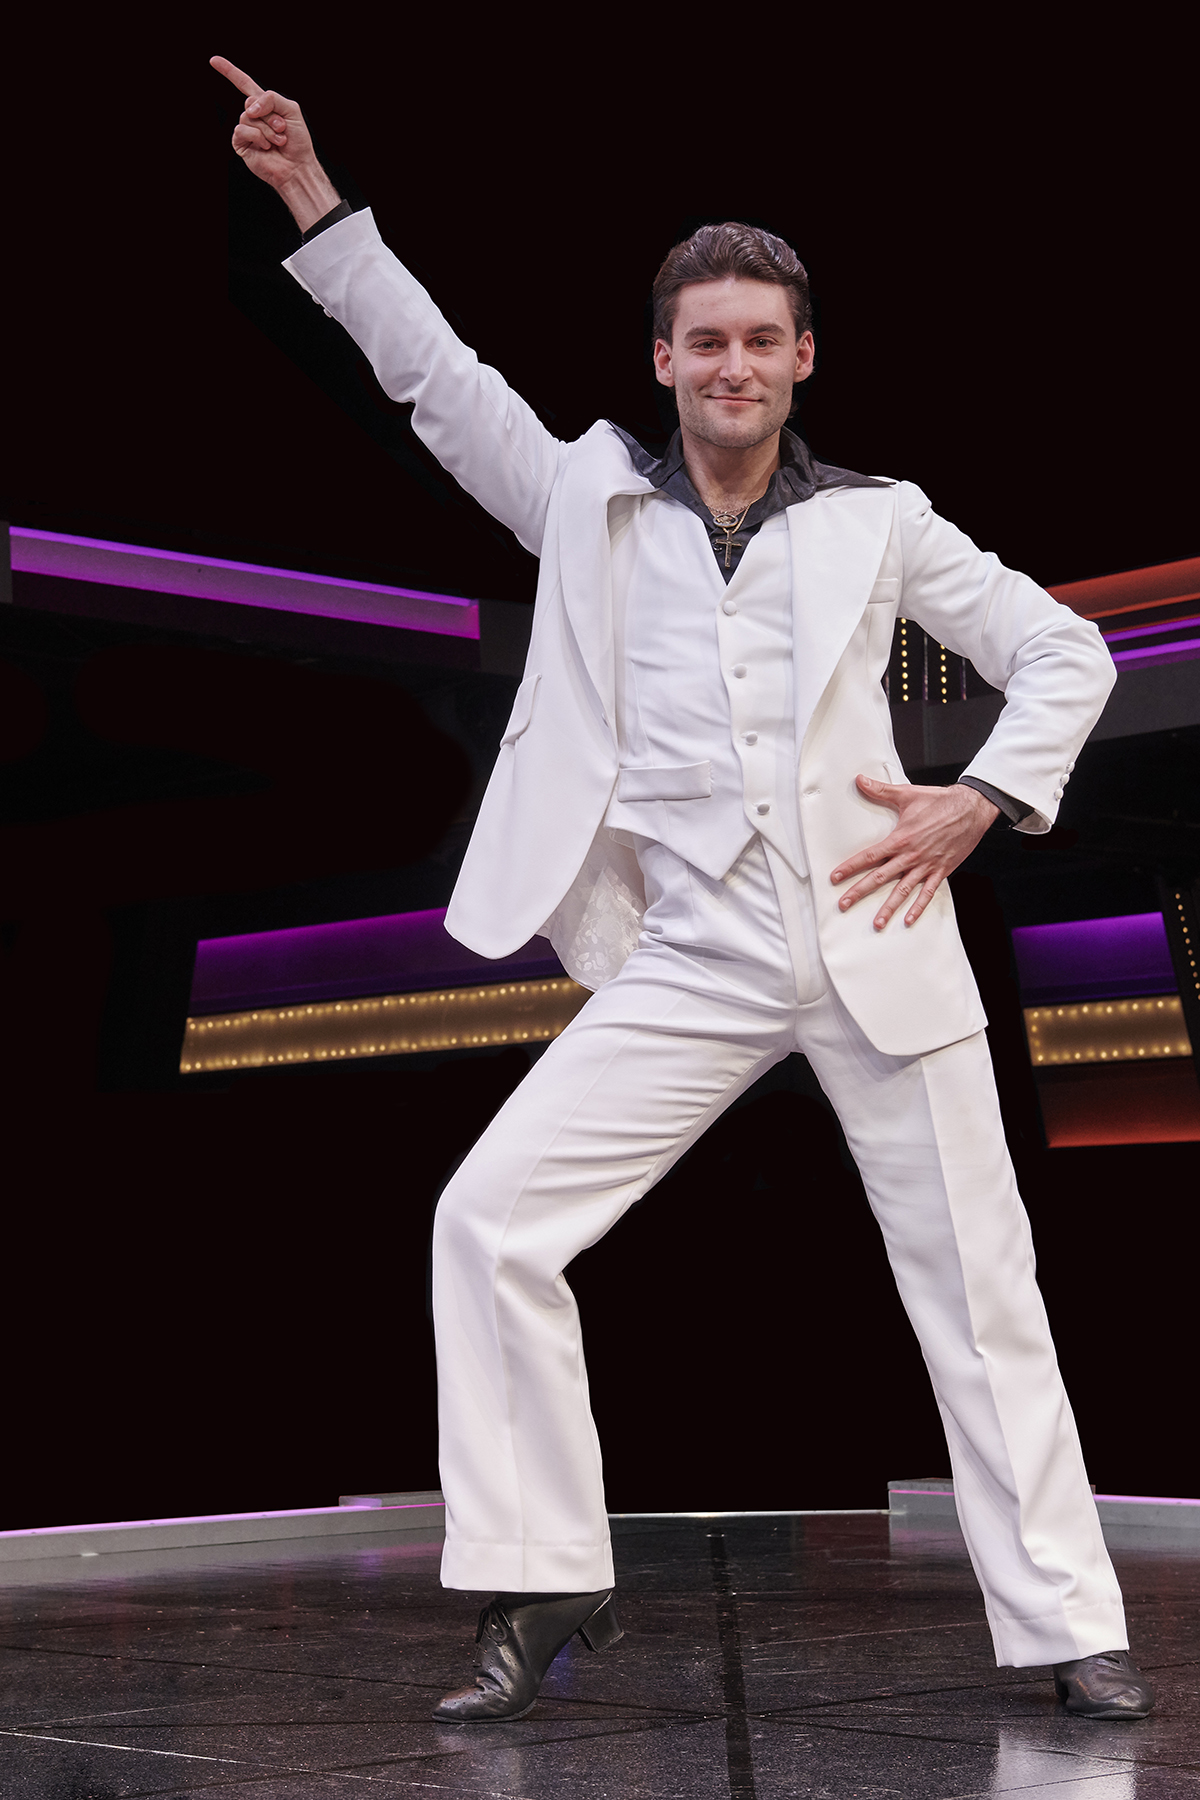 Alex Drost as Tony Manero in Saturday Night Fever